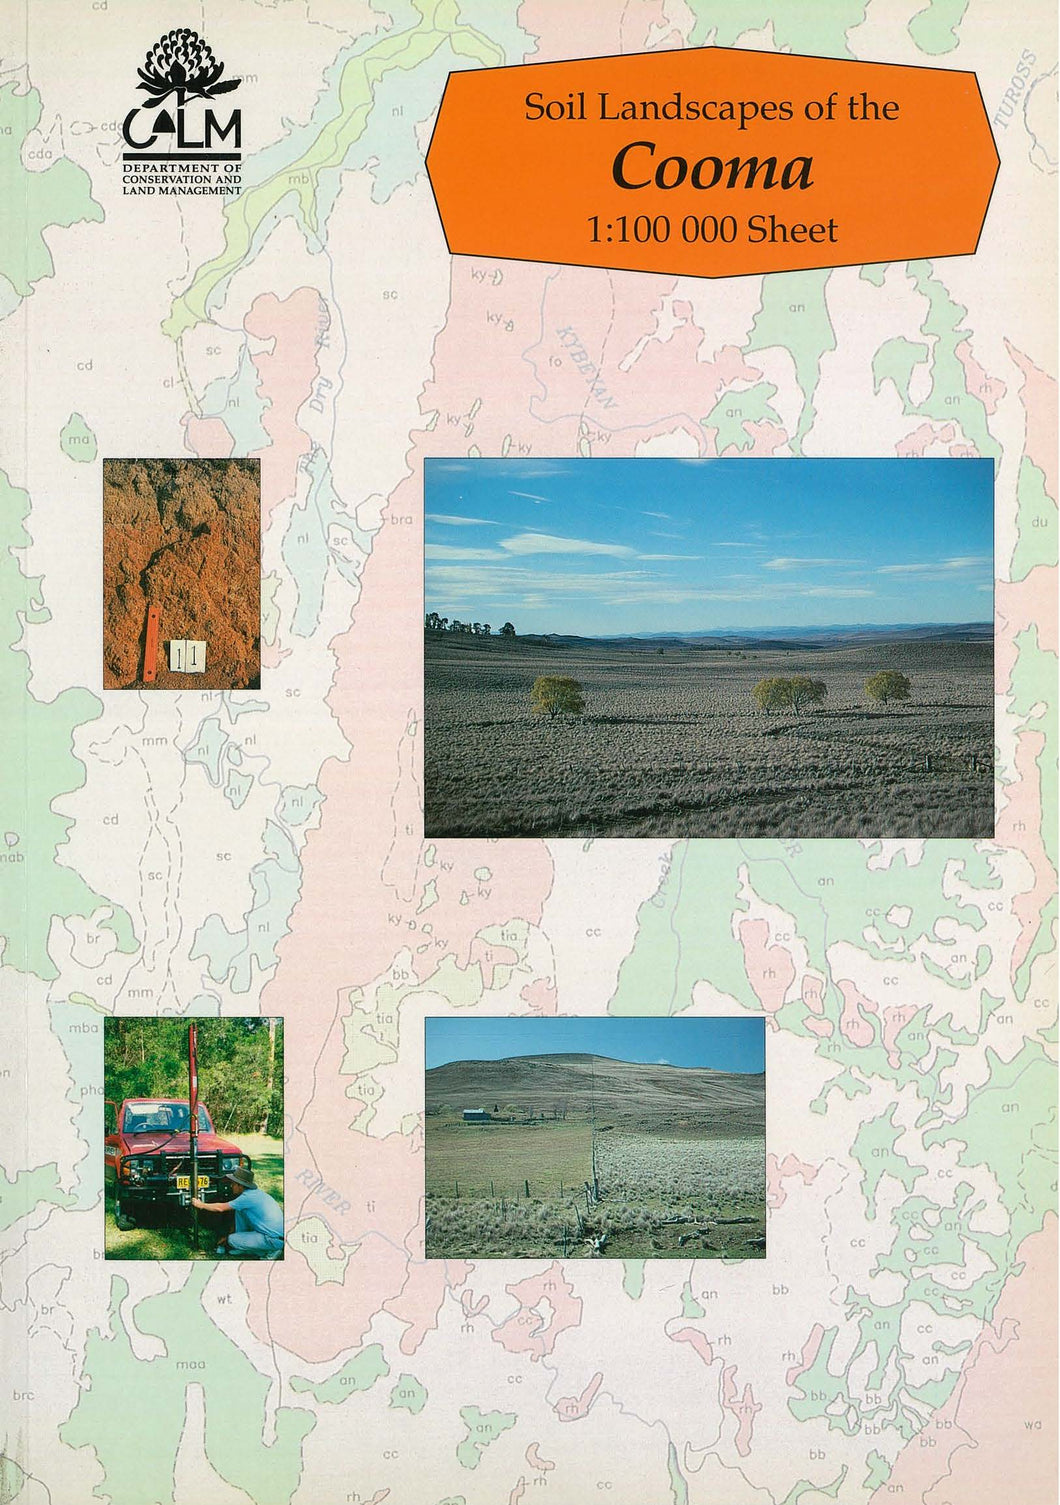 Soil Landscapes of the Cooma 1:100 000 Sheet report cover